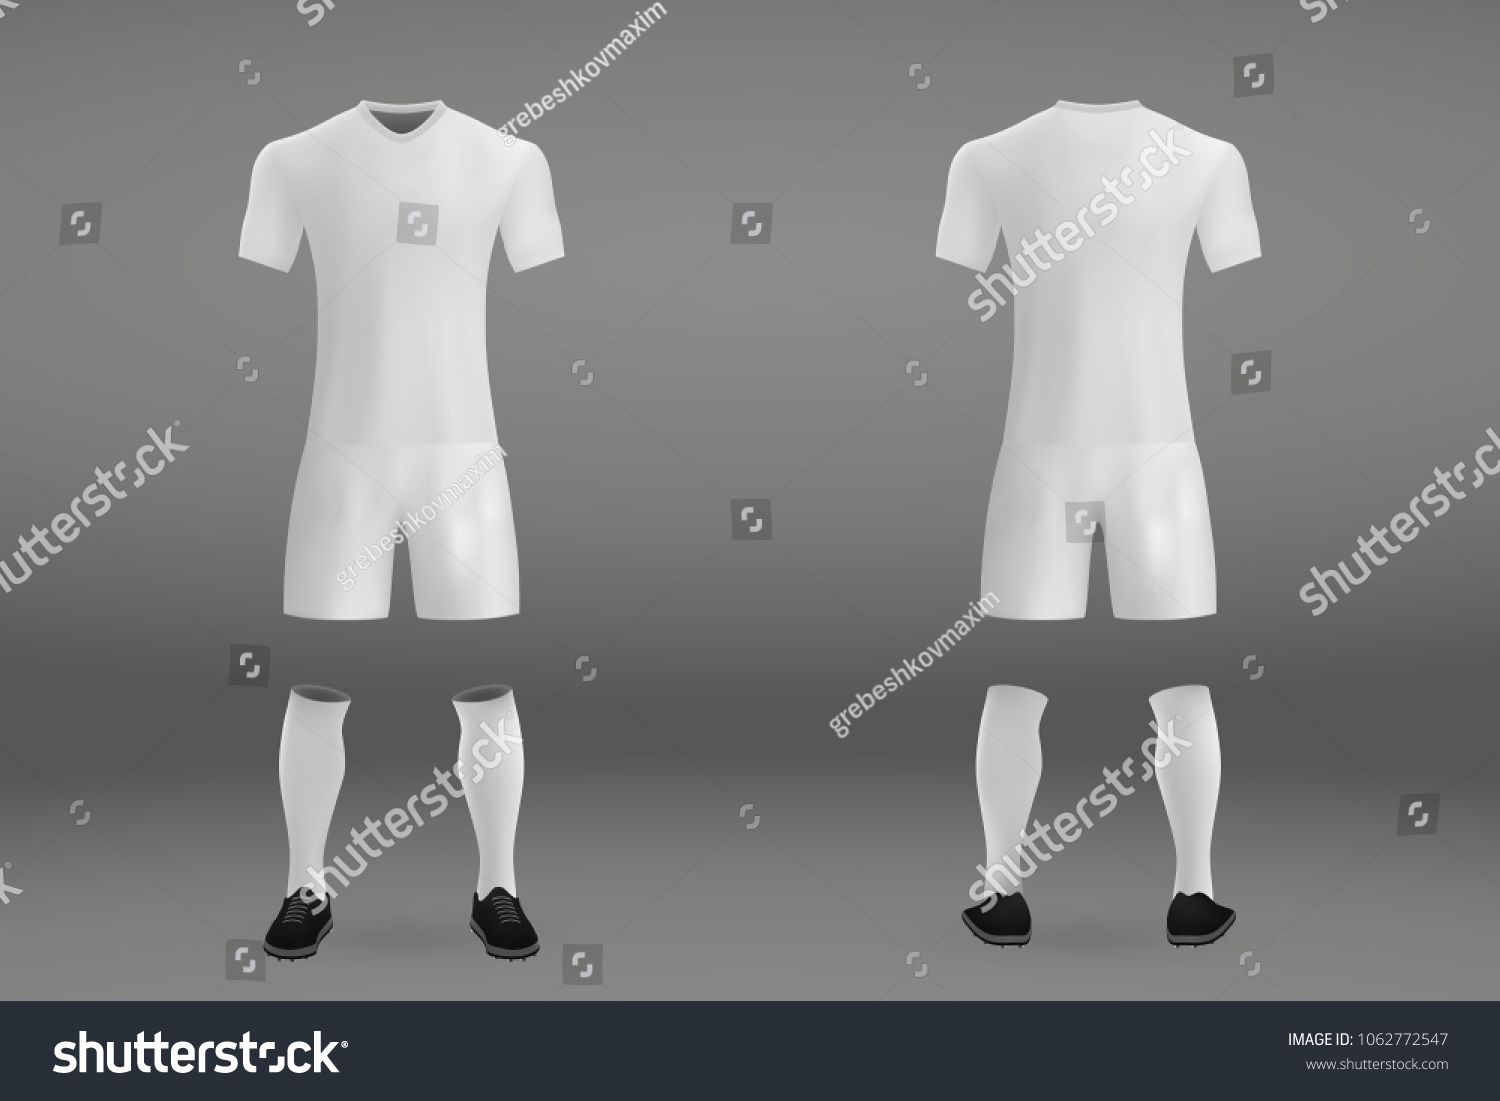 a5551333df5 3D realistic template white soccer jersey t-shirt with pants and socks on  shop backdrop. Mockup of football team uniform jersey#shirt#pants#soccer